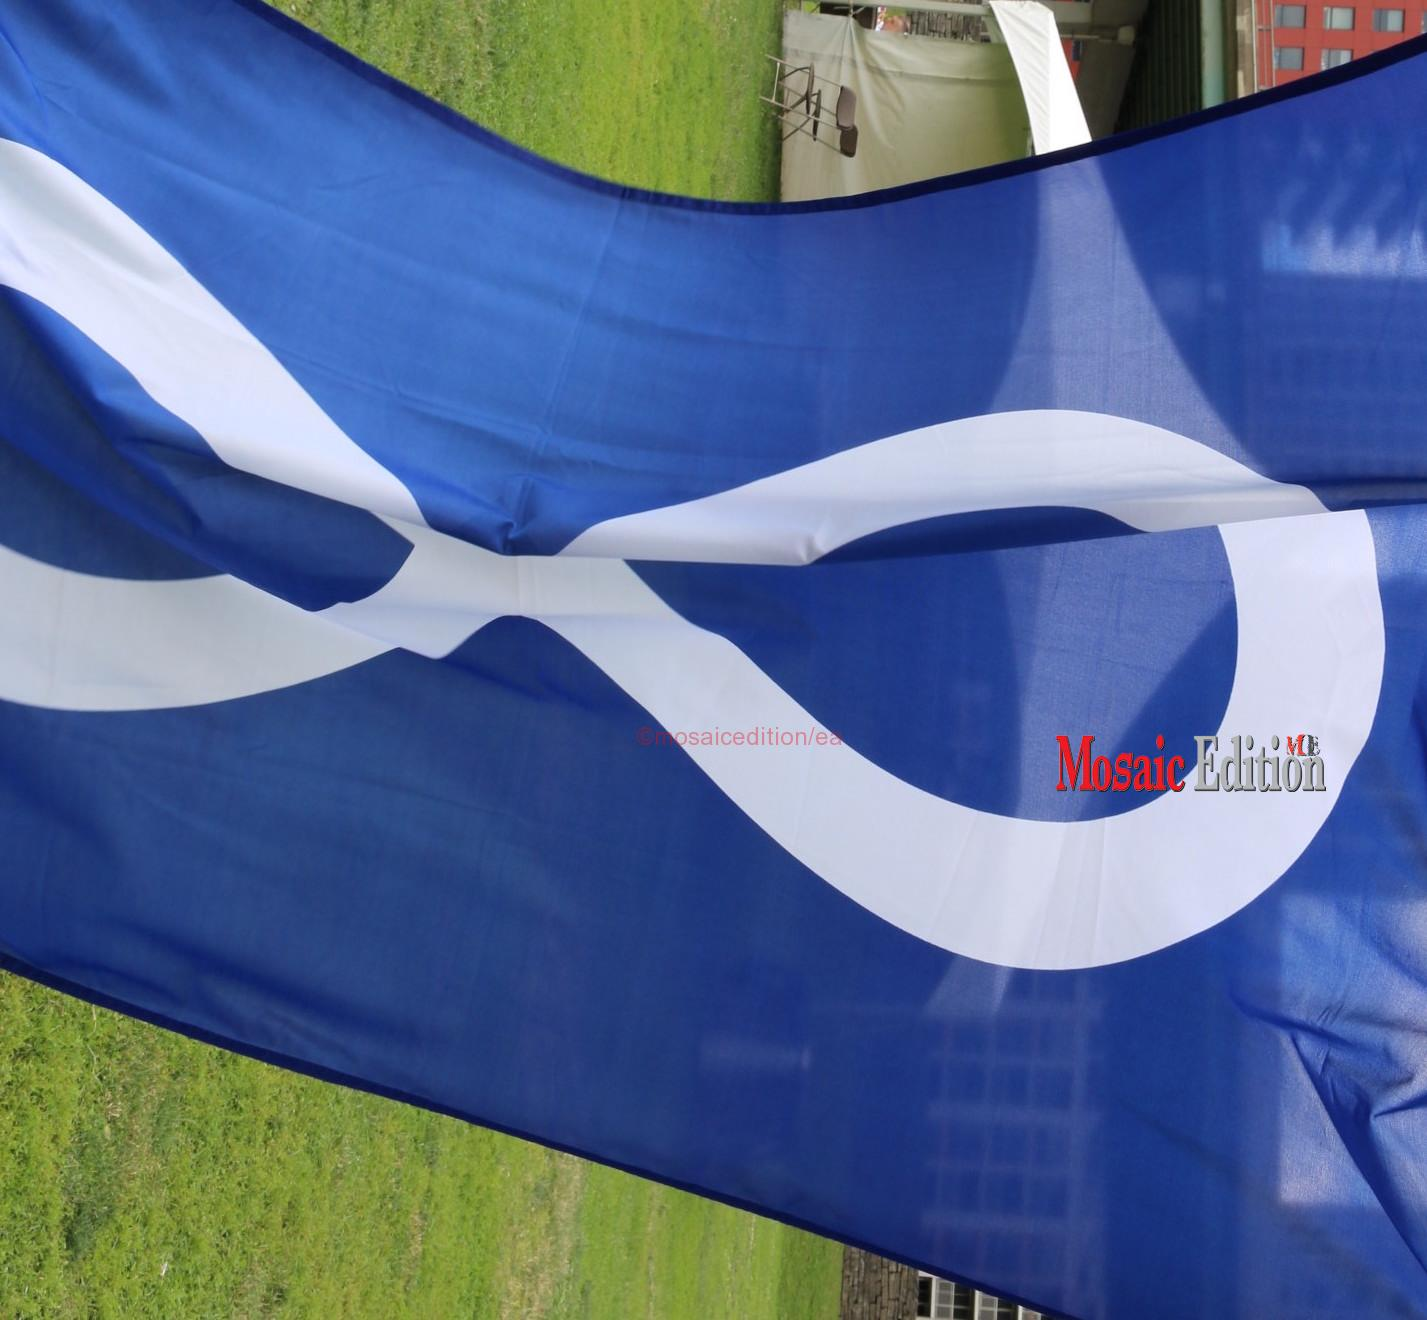 Todd Ross in addition explains the flag of the Métis Nation.   The blue flag is the flag of the Métis Nation of Ontario representing water and the blue sky.